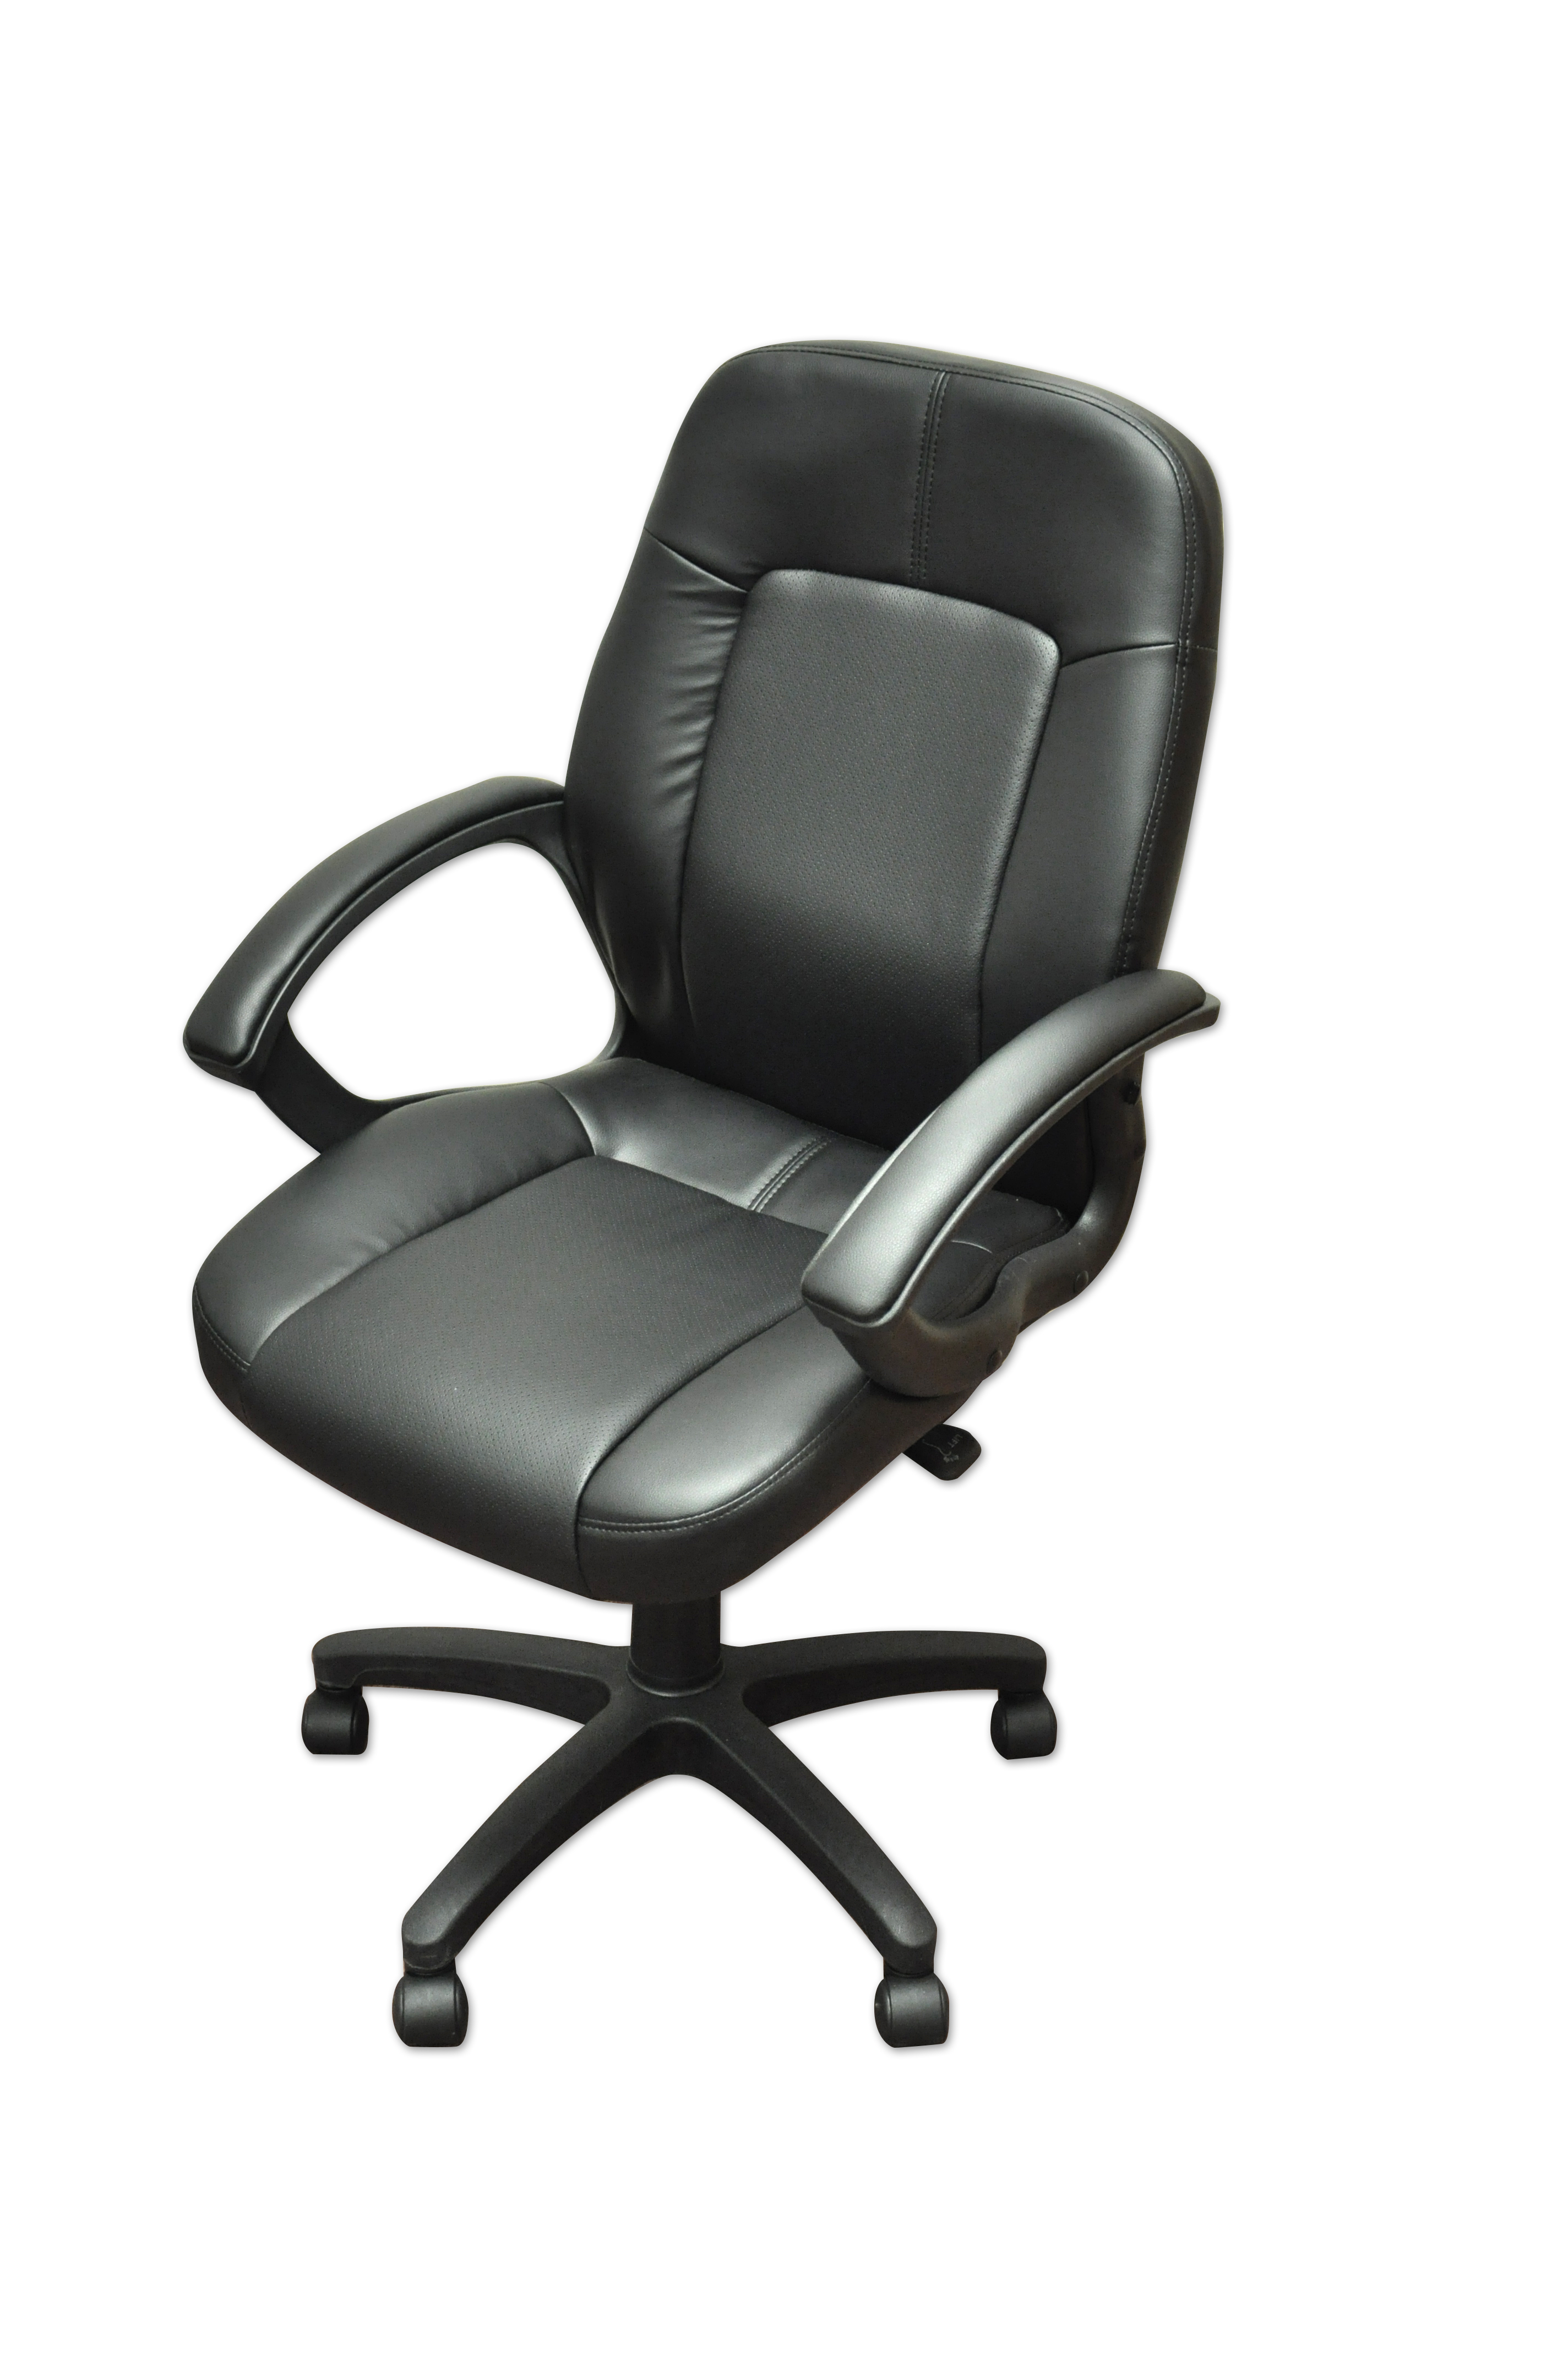 Best Office Chairs For Back Support Awesome Best Lumbar Support For Office Chair Rtty1